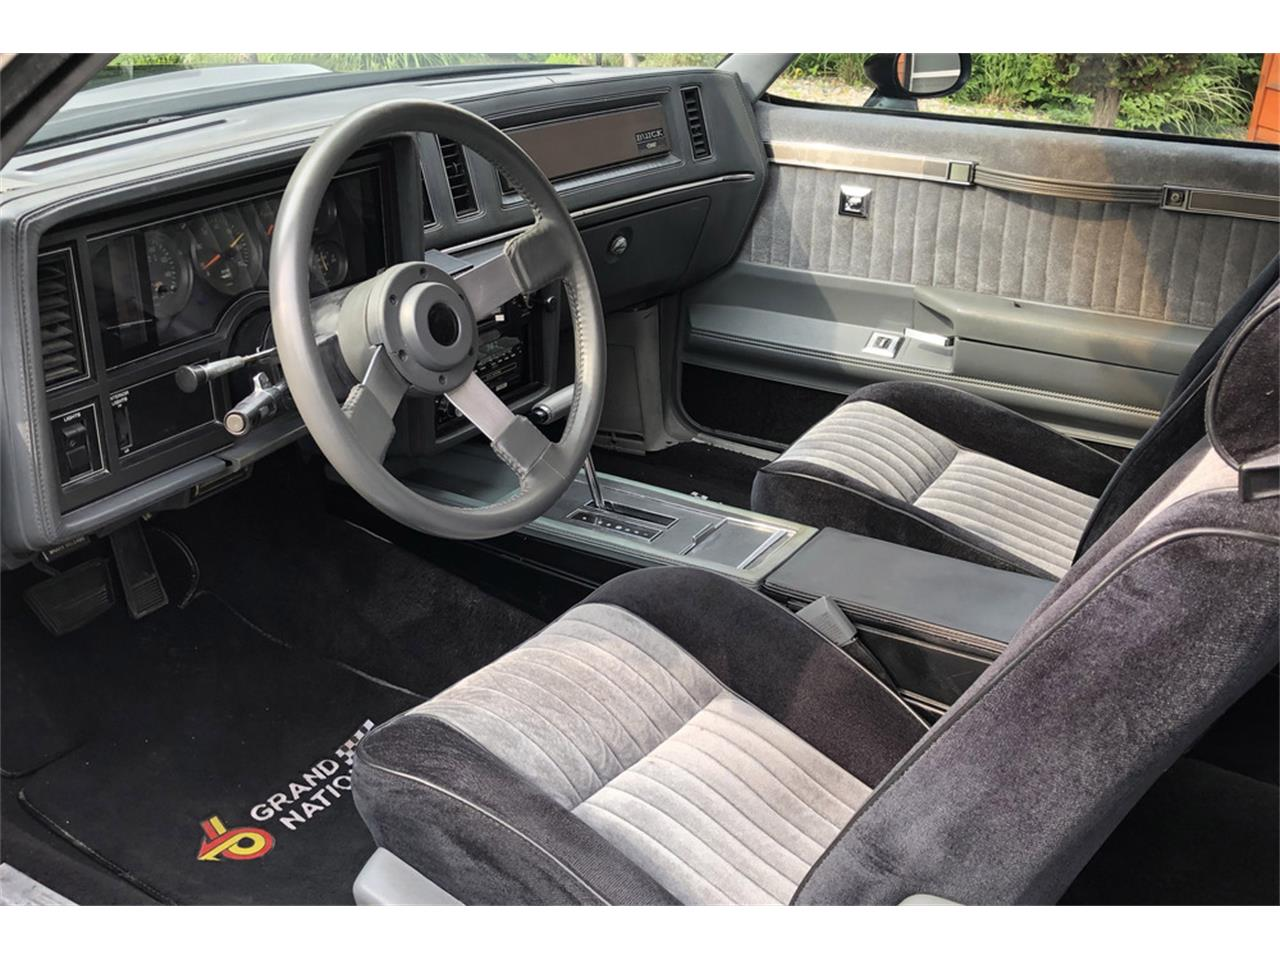 1987 Buick Grand National (CC-1228099) for sale in Uncasville, Connecticut